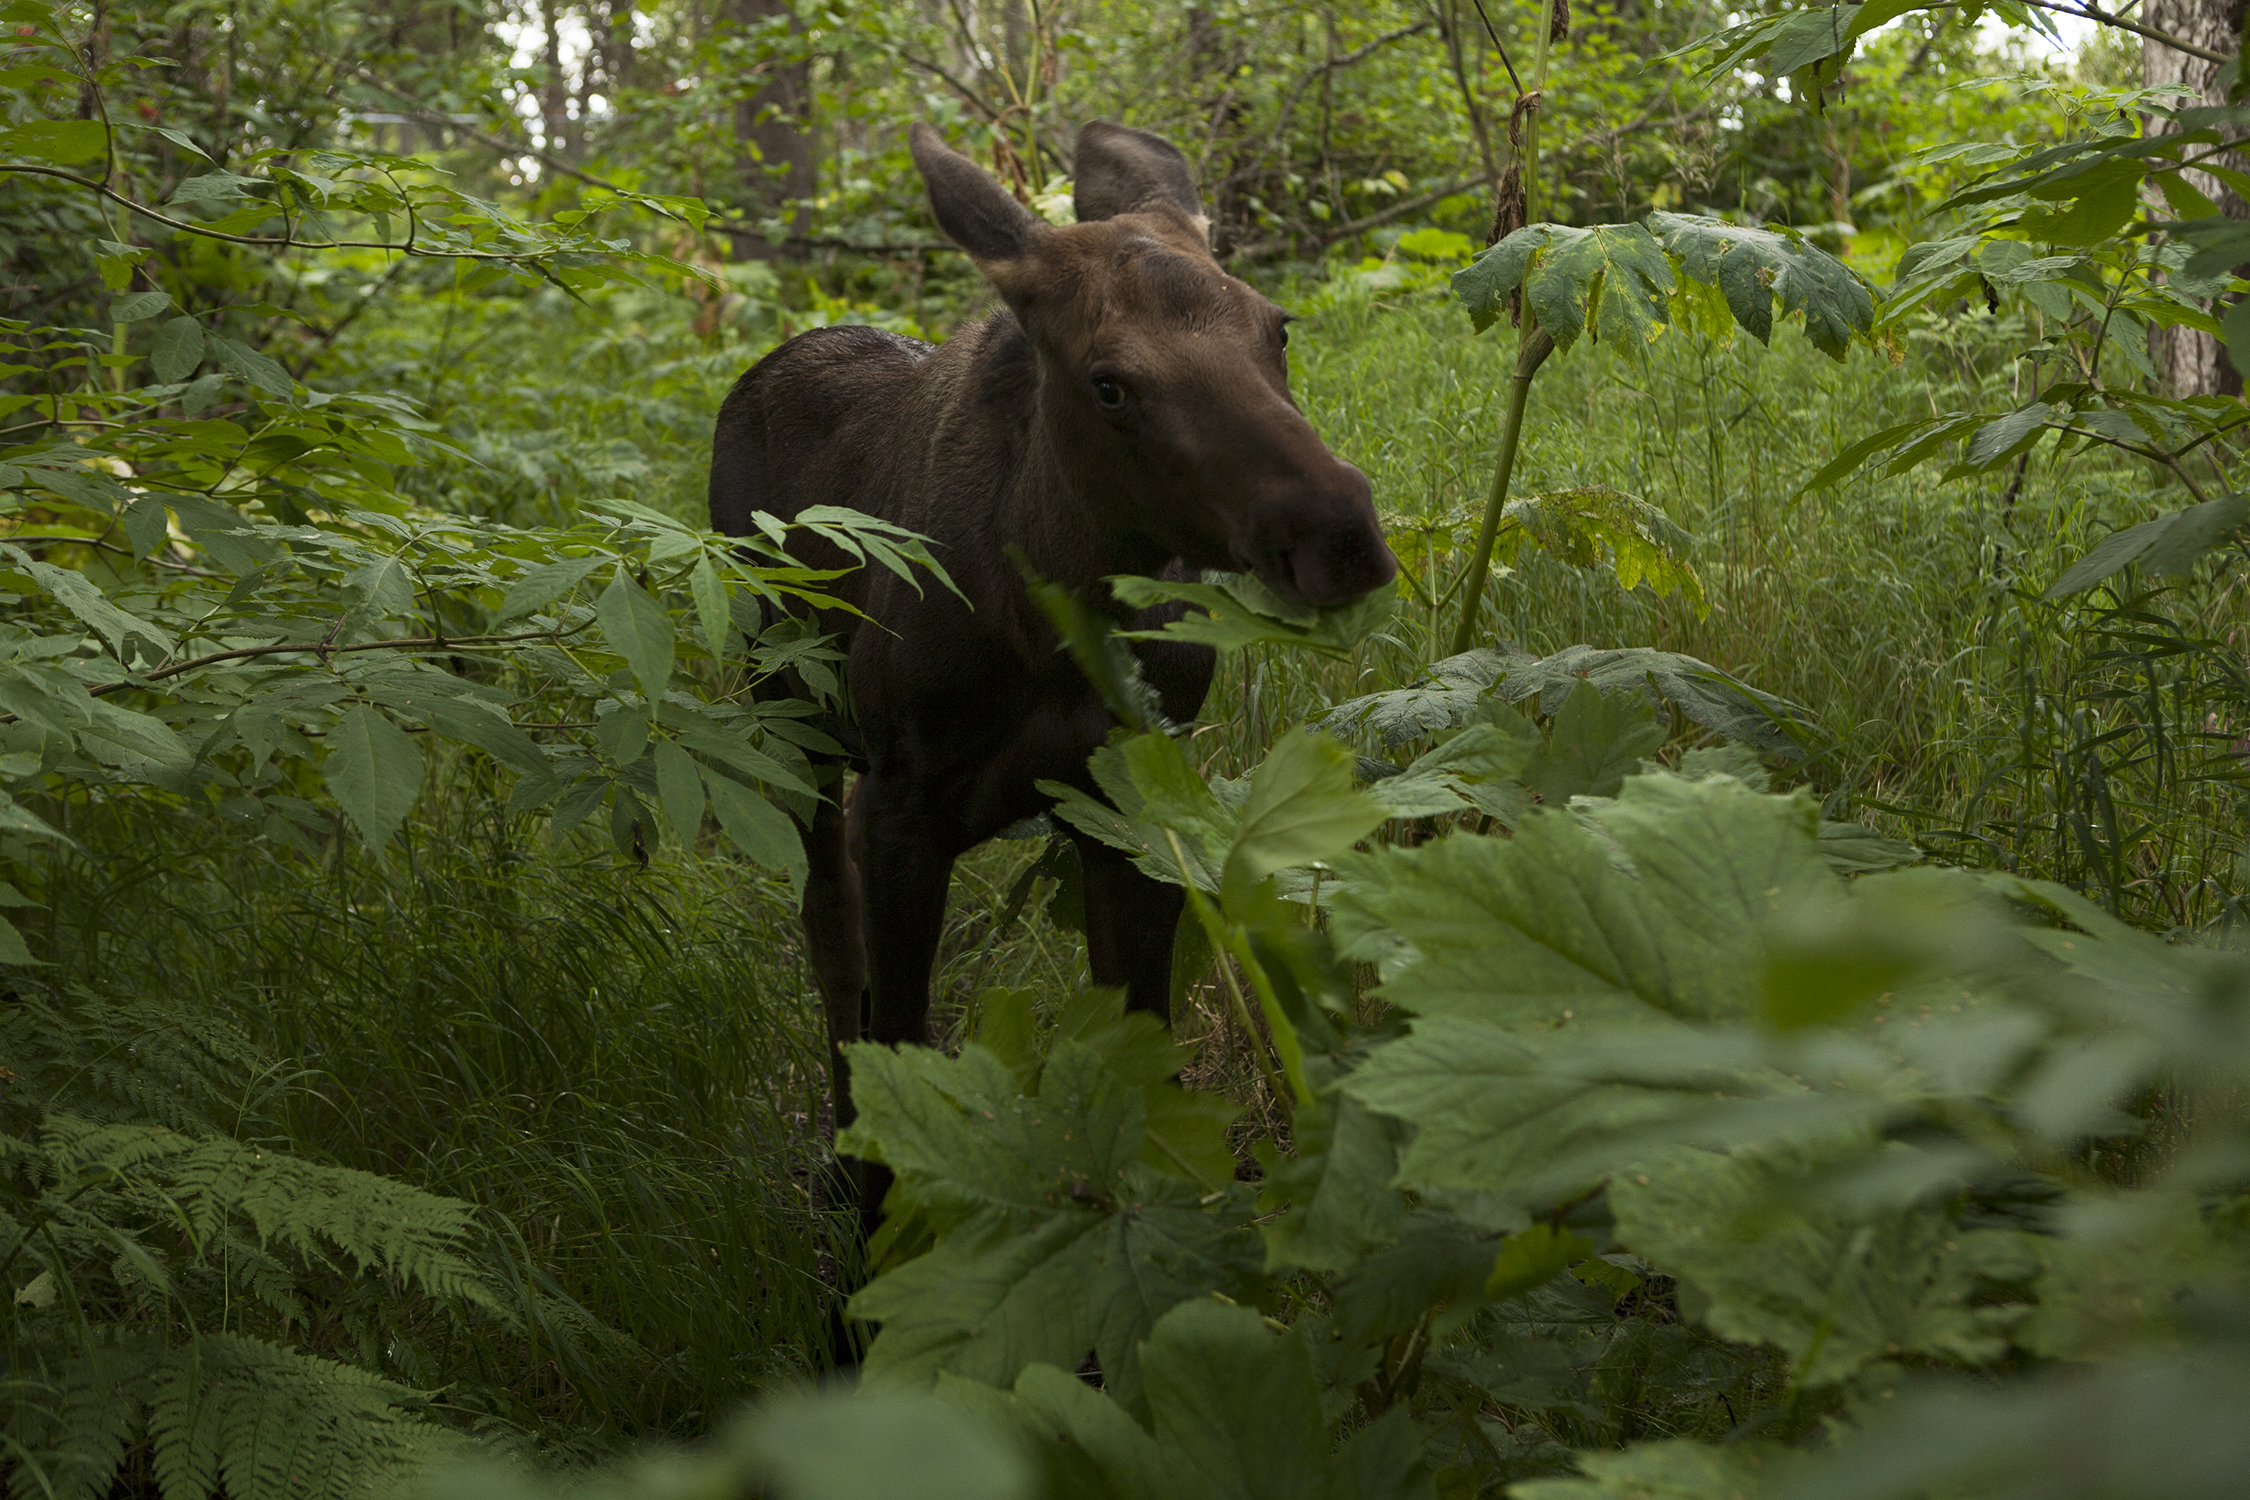 On the Tony Knowles Trail, one of the Greenbelts located in Anchorage, Alaska, a baby moose grazes near the 11 -mile bike path from Kincaid Park to Cook Inlet. © Photo by Gail Fisher